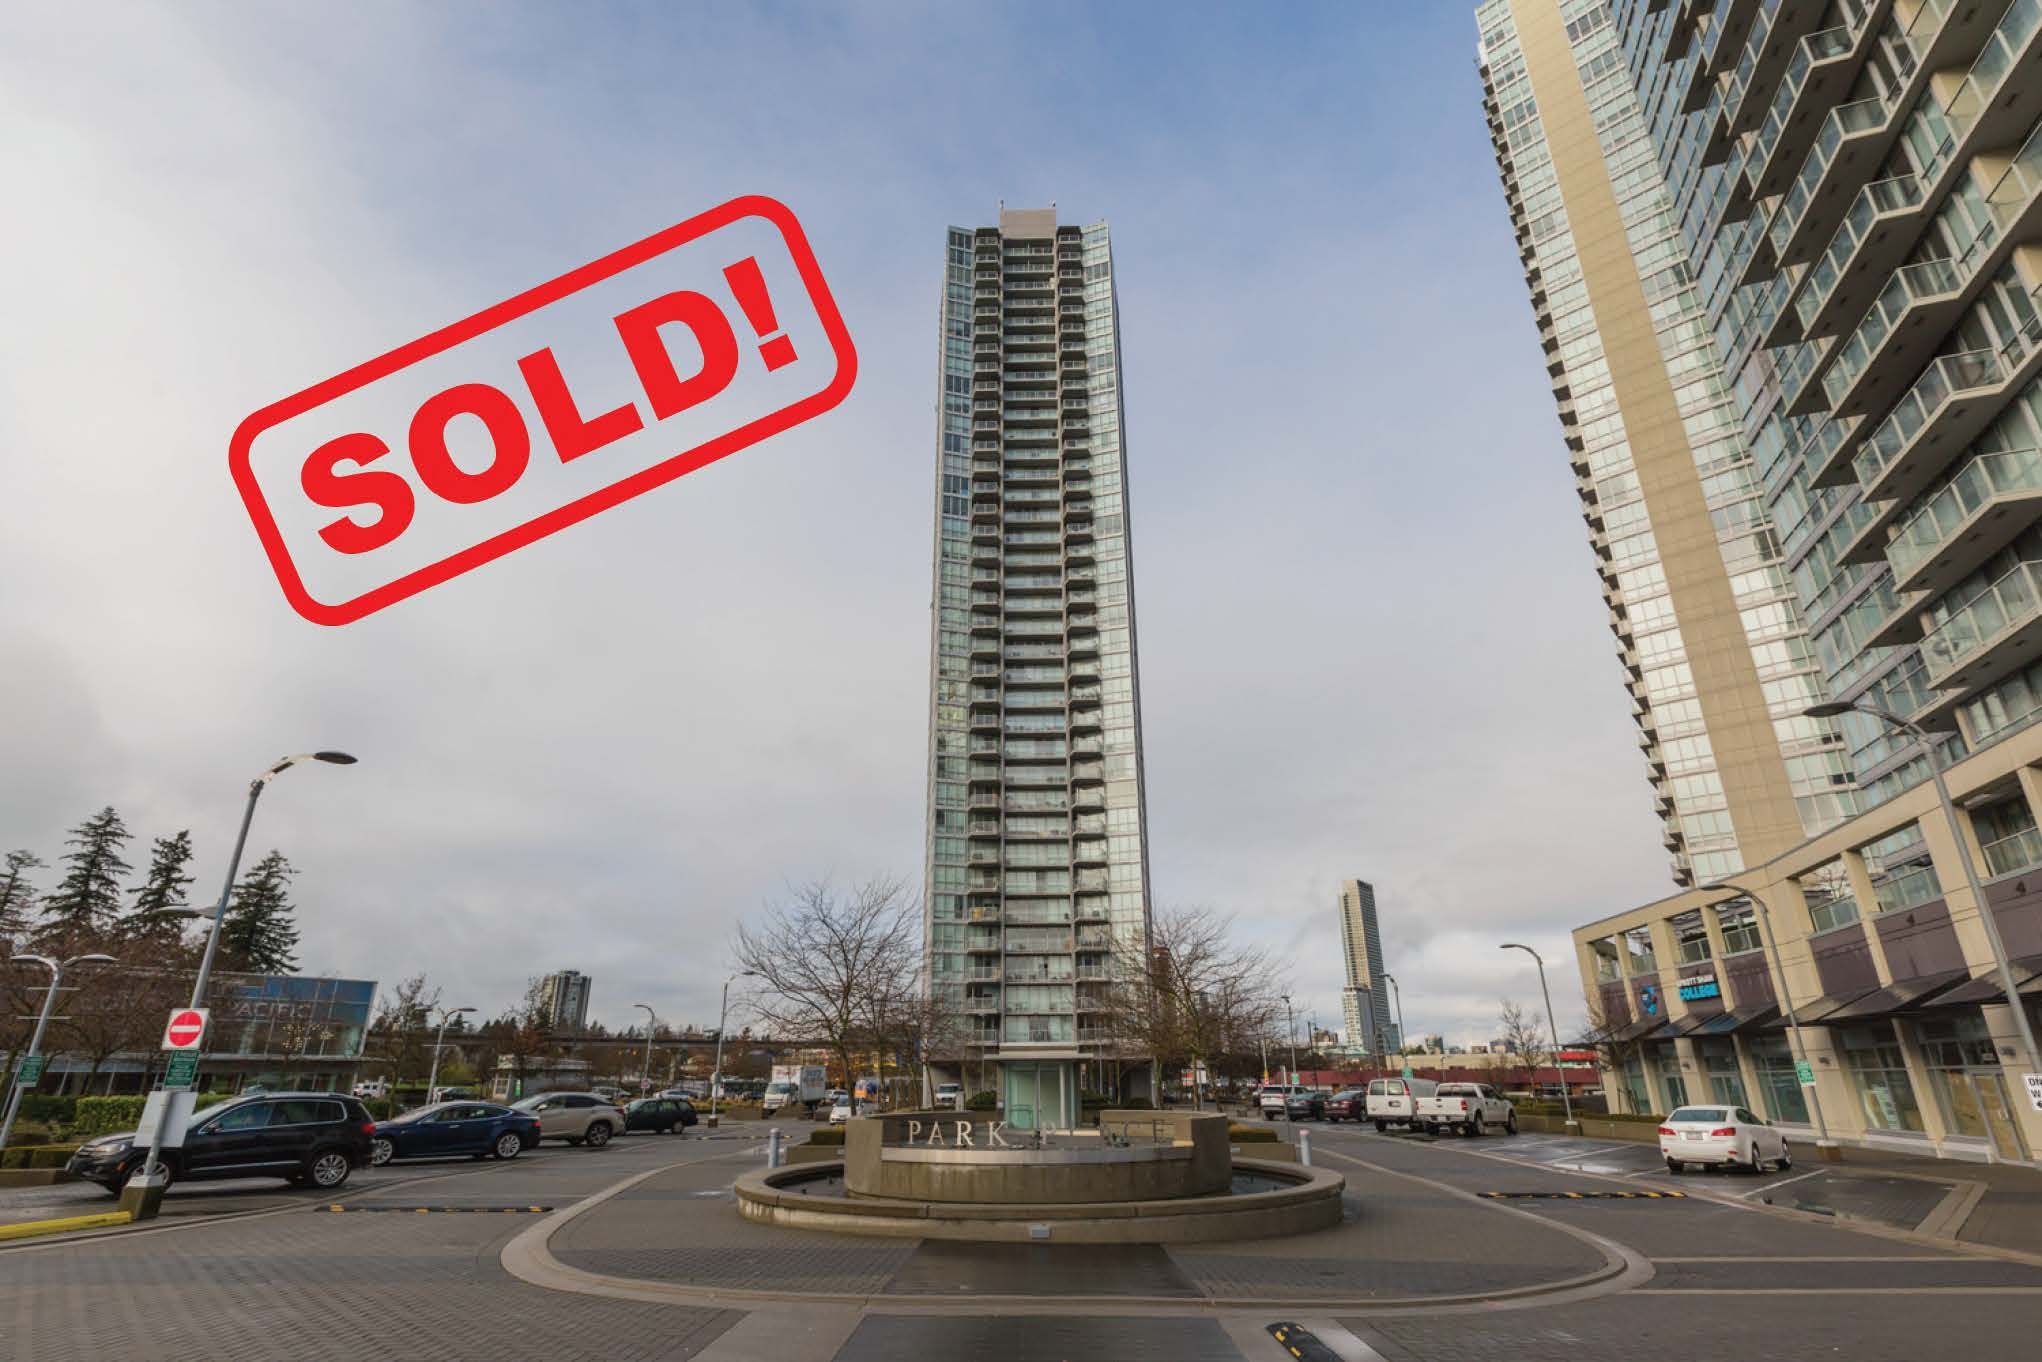 3306-13618 100 AVENUE     SOLD FOR: $372,000  1 BED | 1 BATH | 579 SF